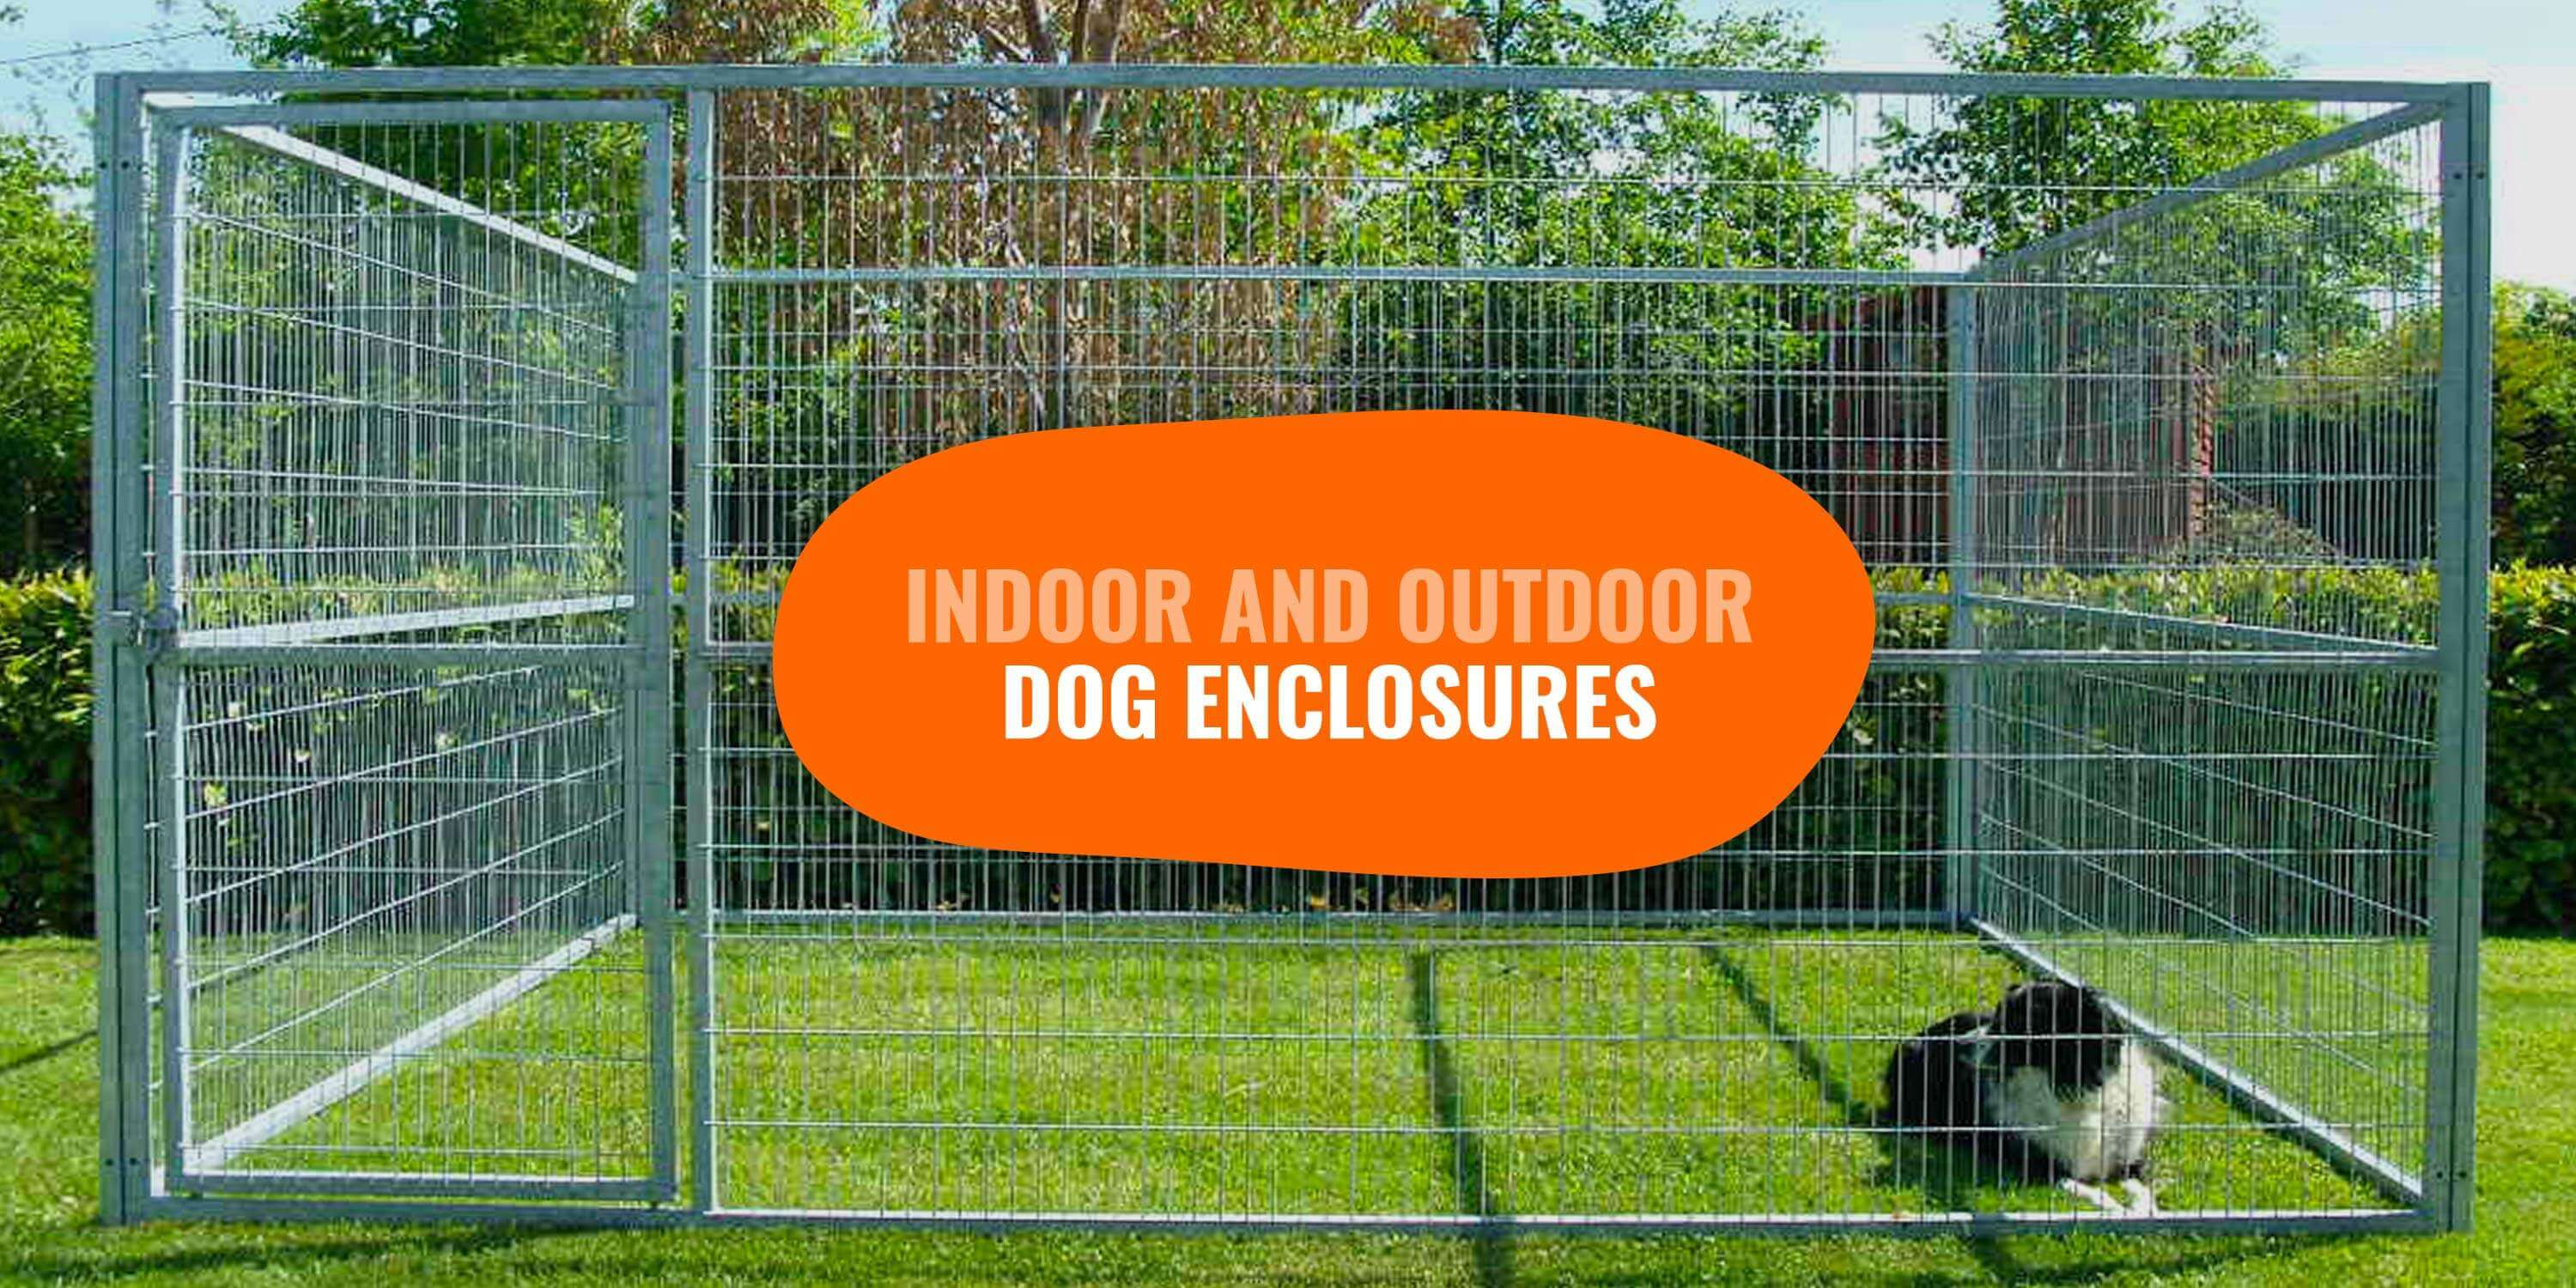 10 Best Dog Enclosures (Indoors and